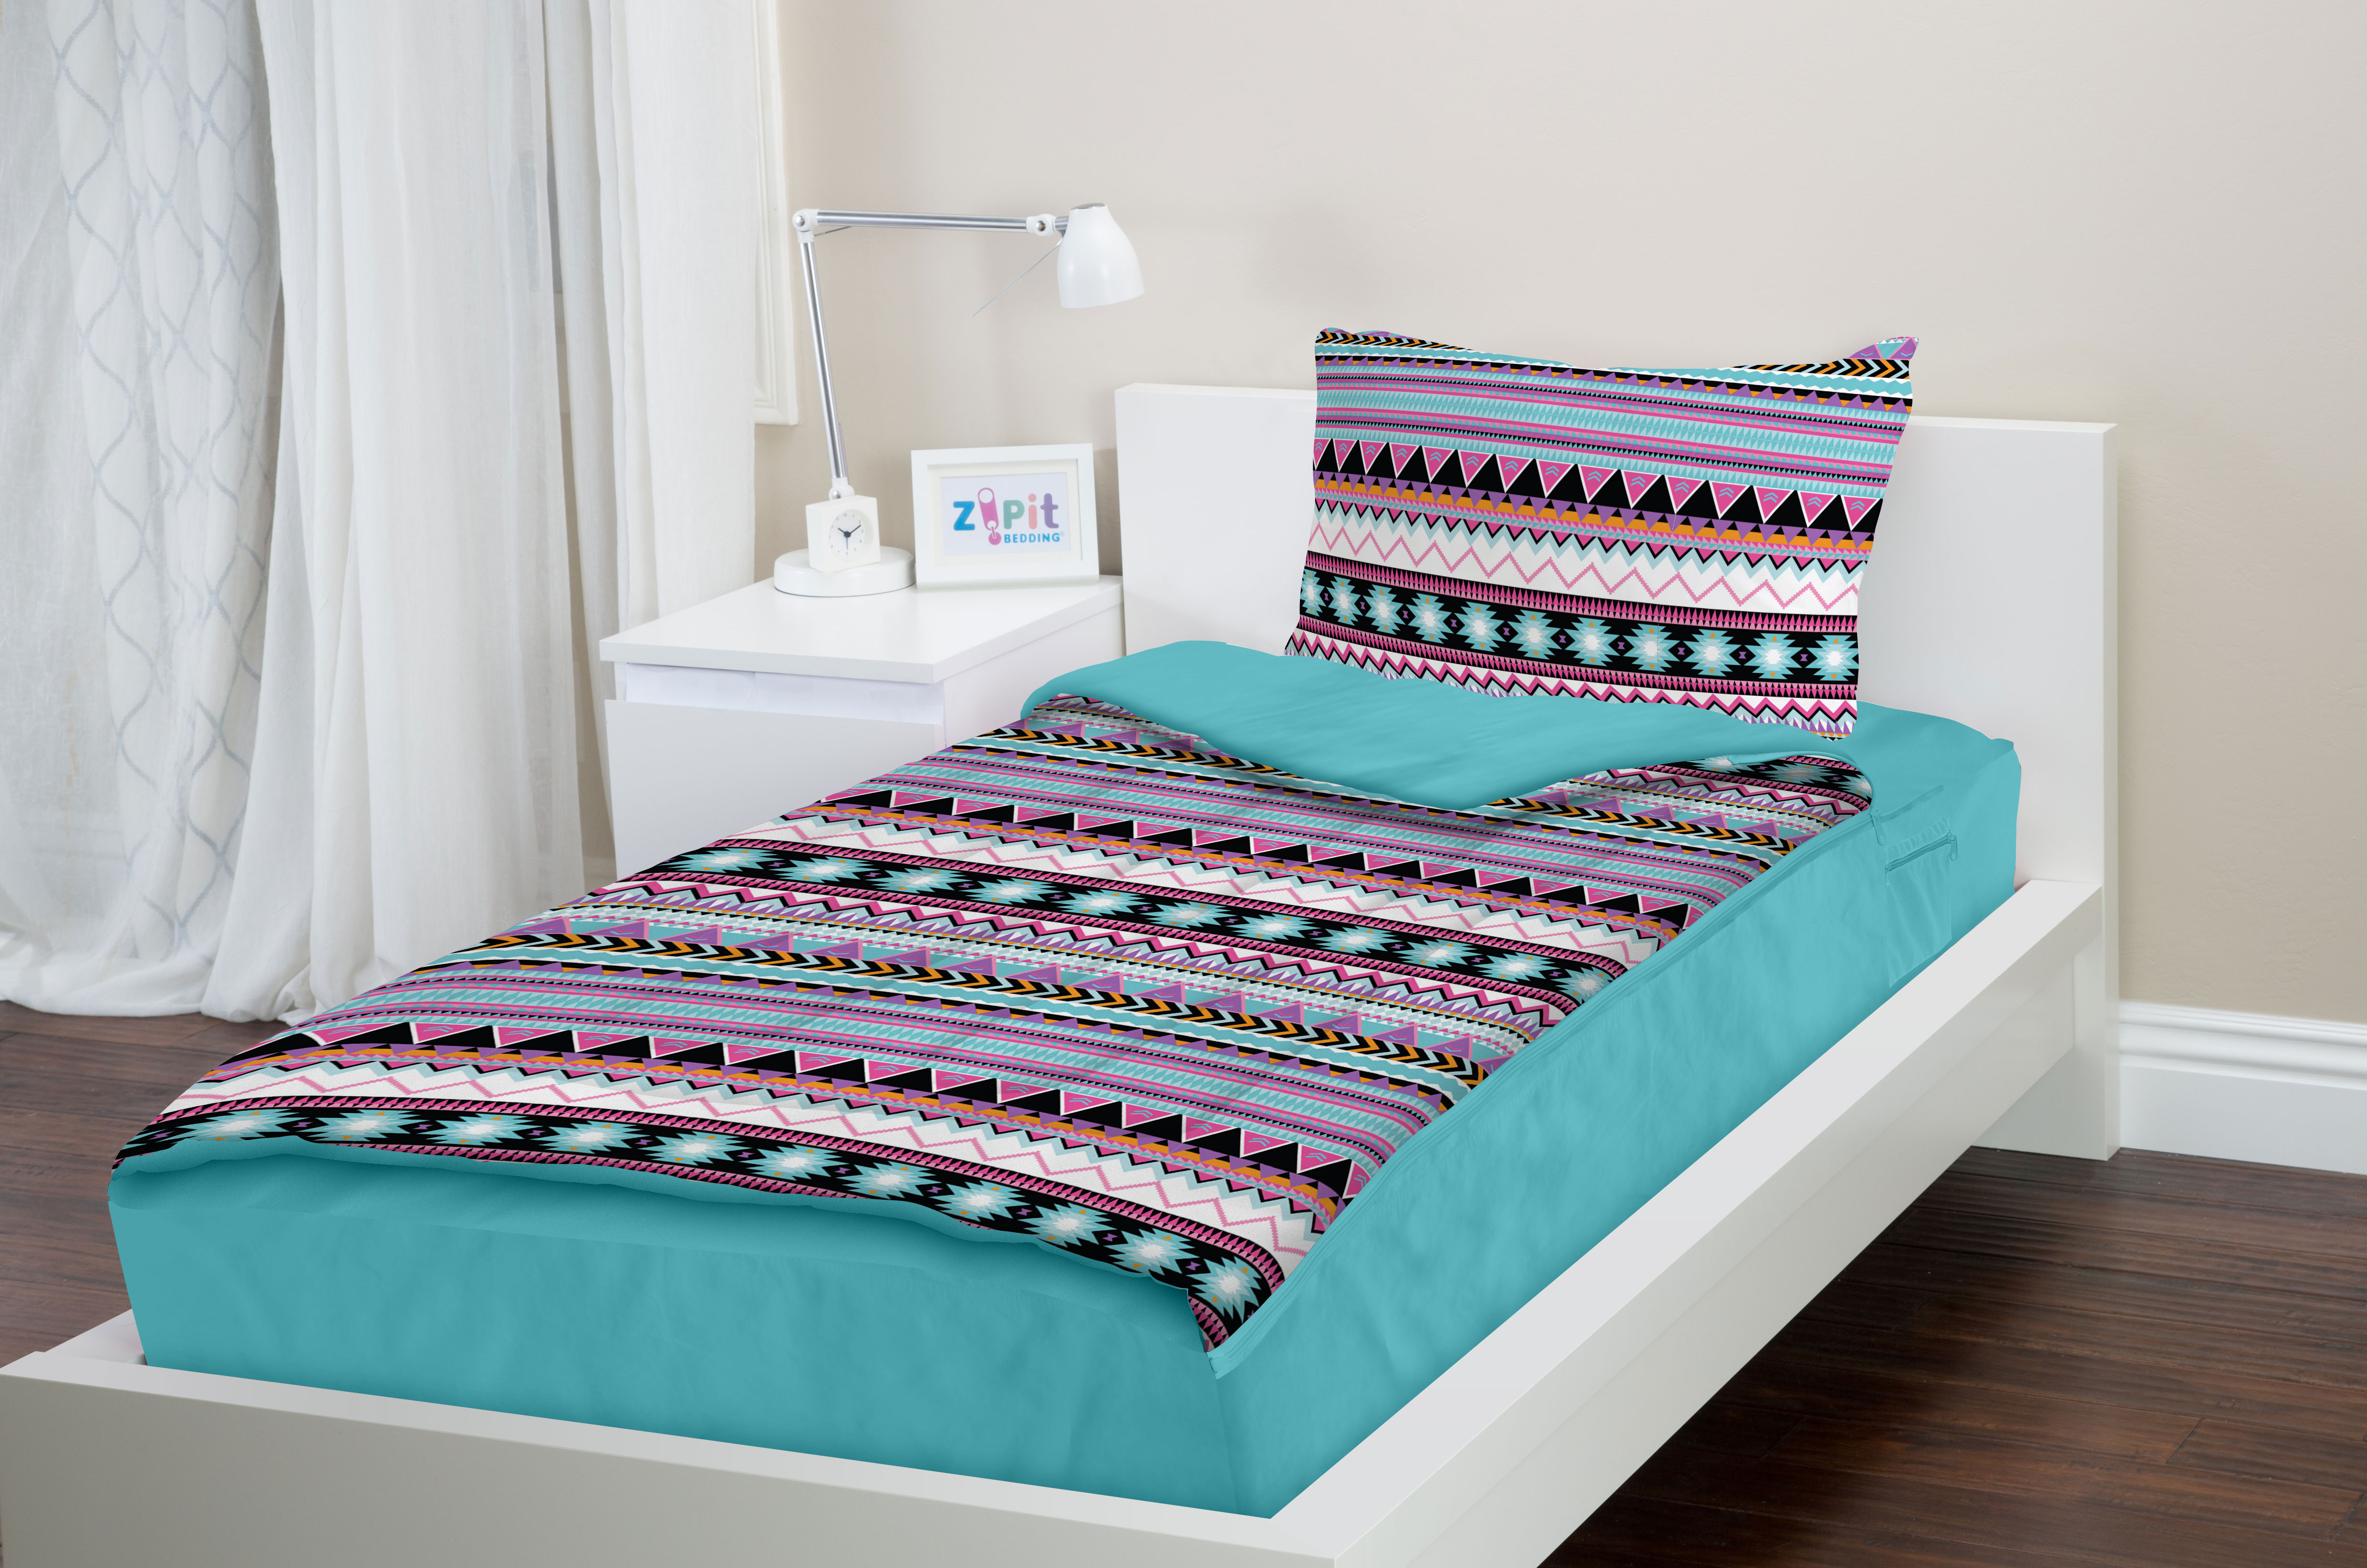 Top Zipit Bedding Set - Zip-Up Your Sheets and Comforter Like a  EU33